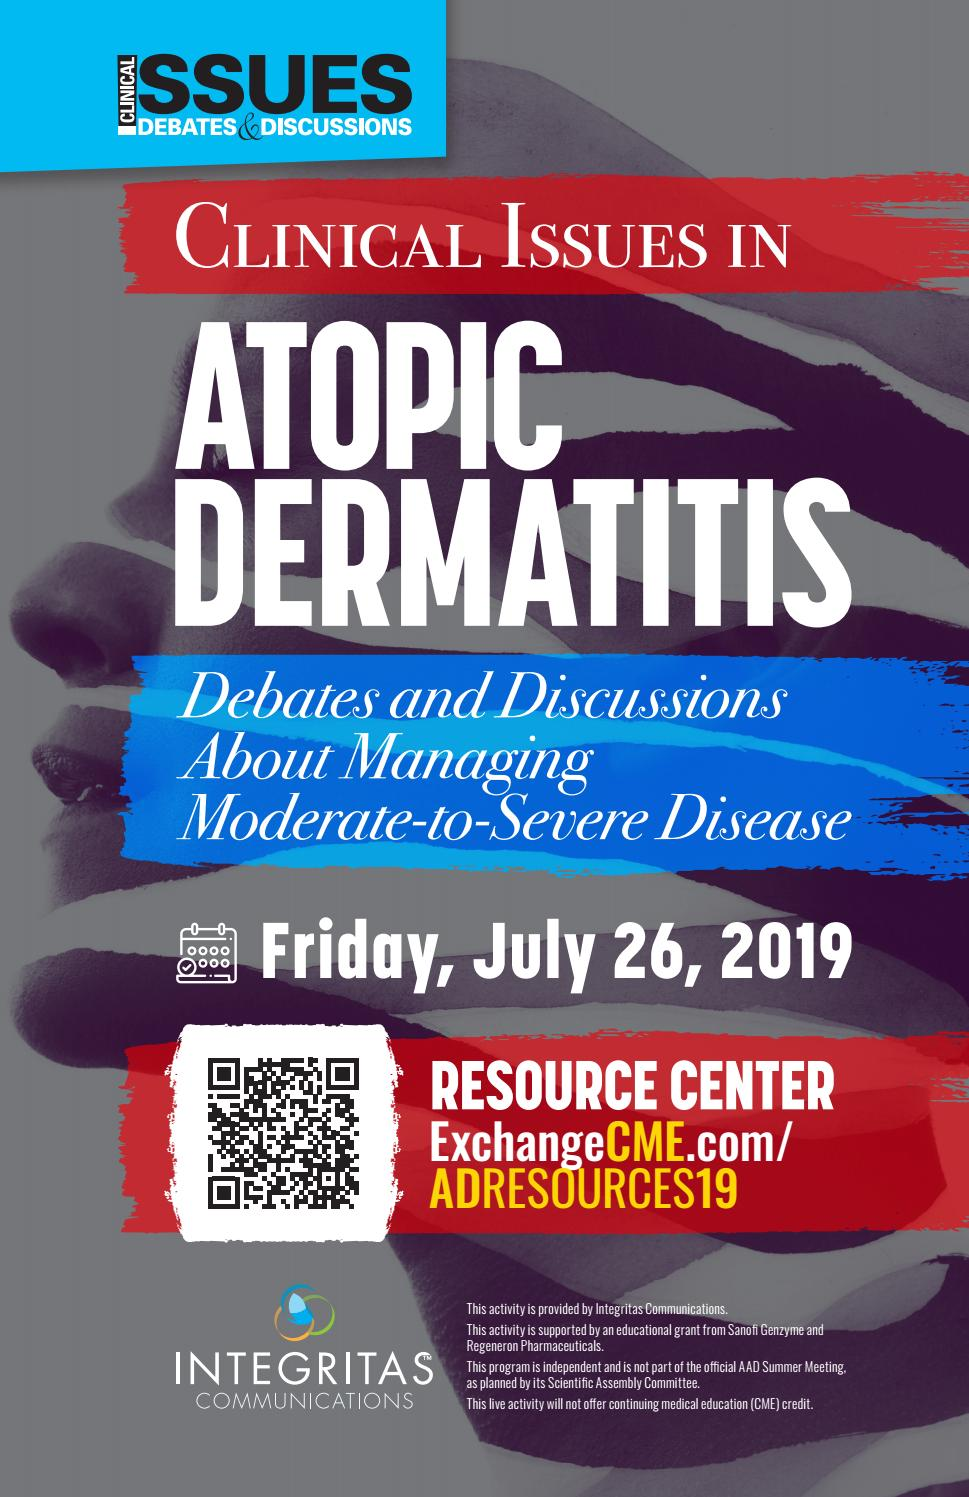 Clinical Issues In Atopic Dermatitis By Integritas Communications Issuu Compare the activities in list 1 and 2, add what get ready to discuss summer activities. issuu